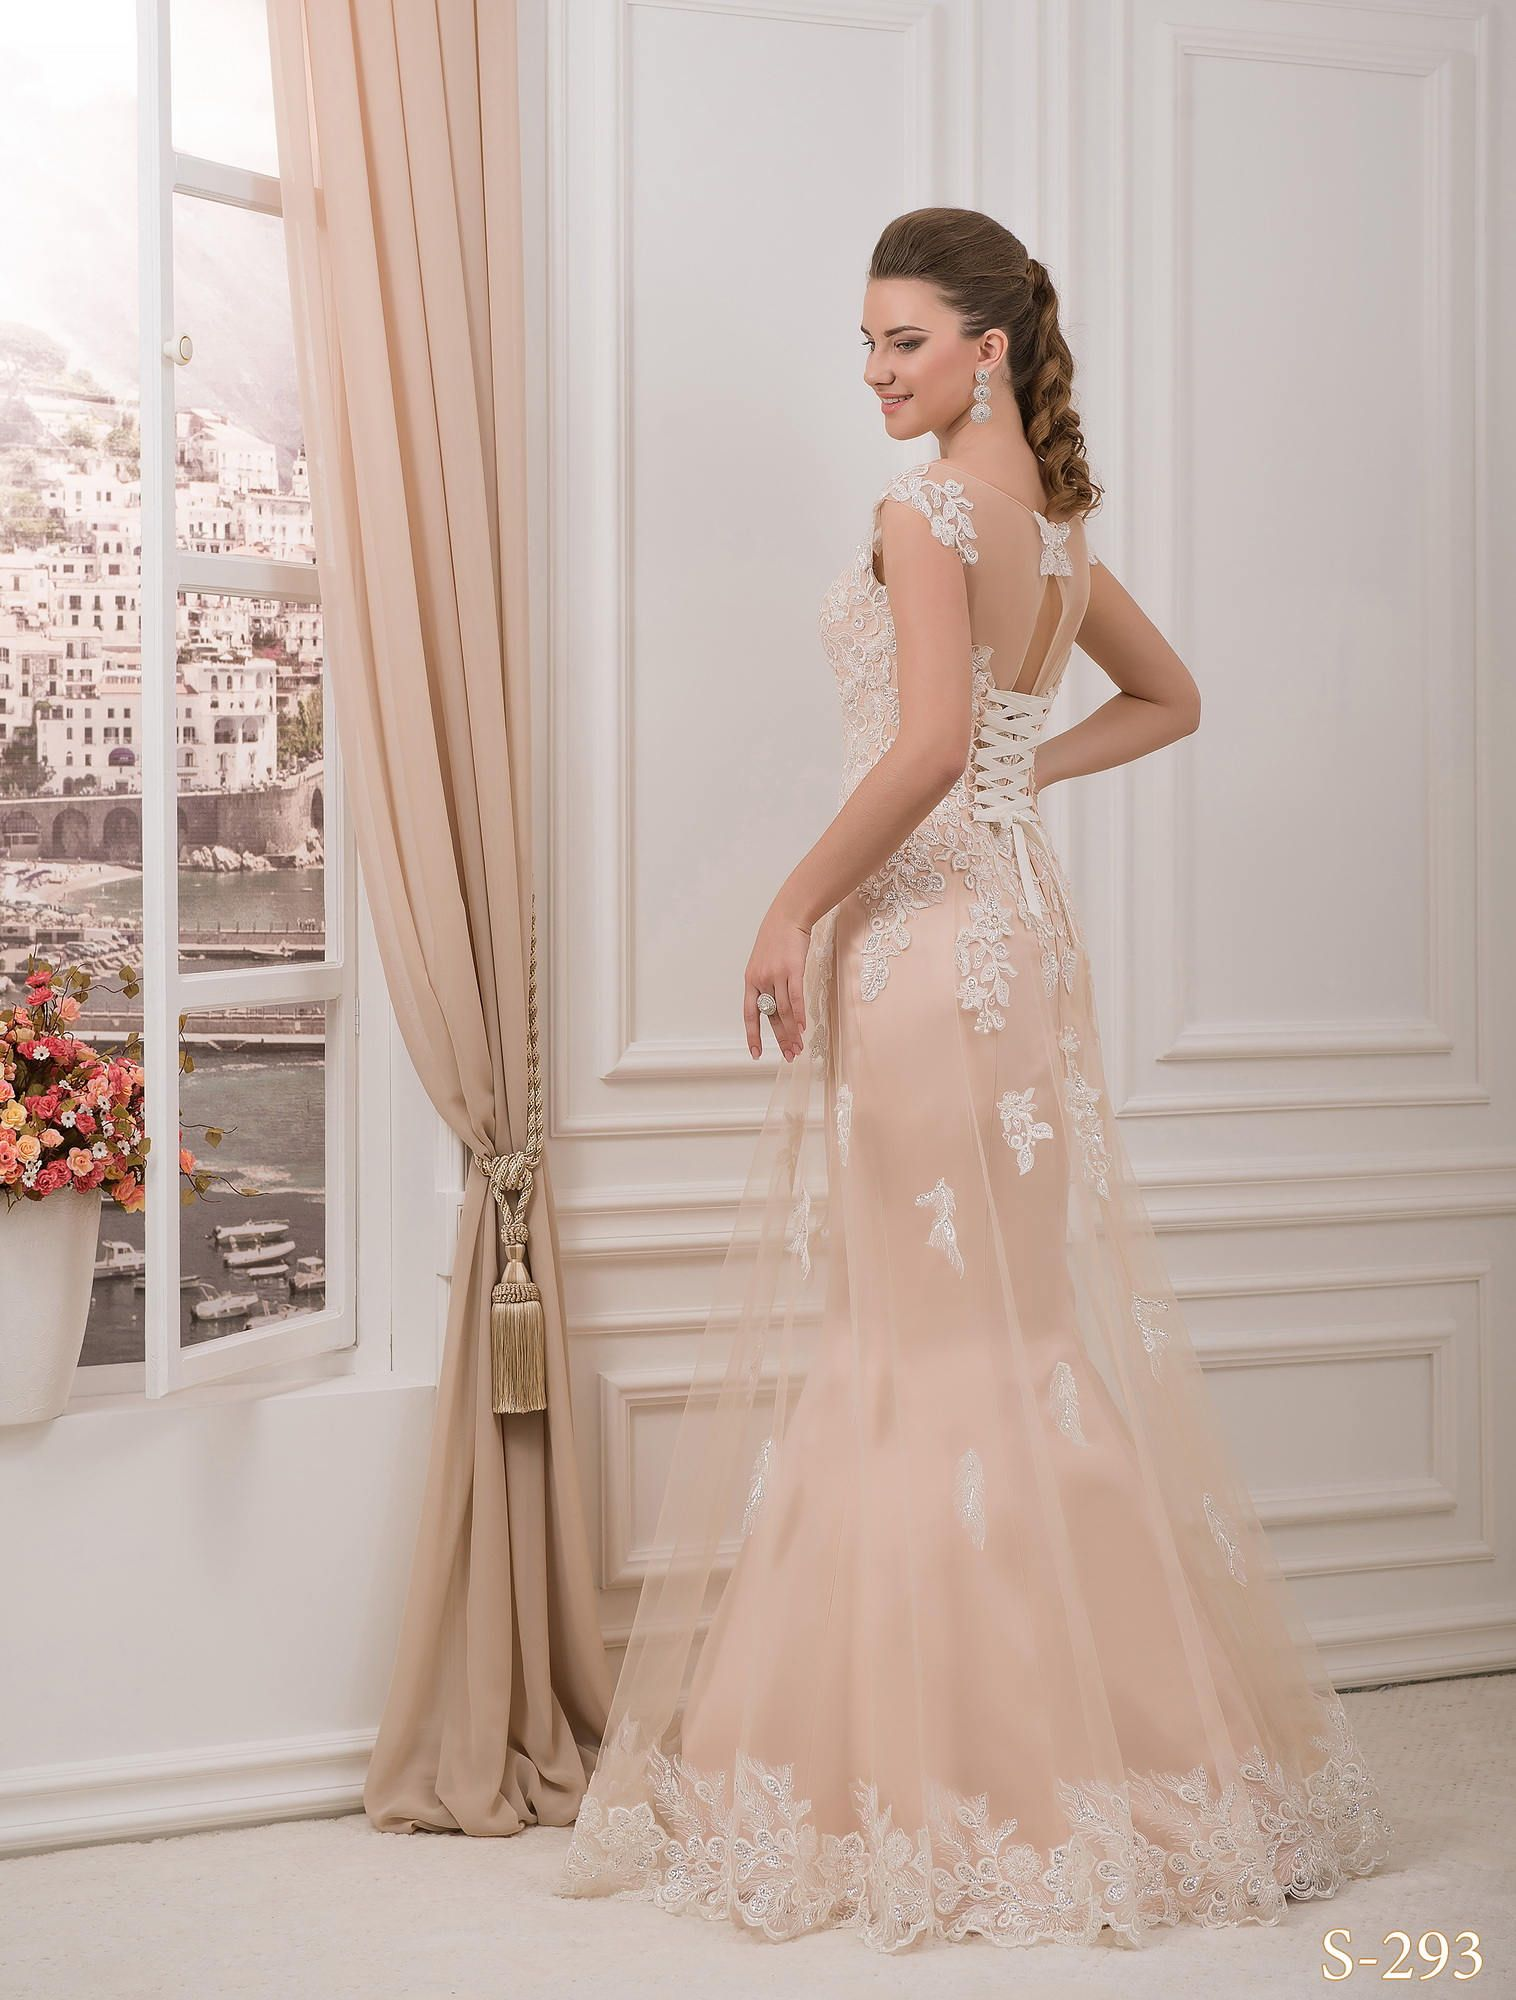 Blush pink wedding dress ho wedding dress romantic wedding blush pink wedding dress ho wedding dress romantic wedding dress back wedding dress ombrellifo Image collections